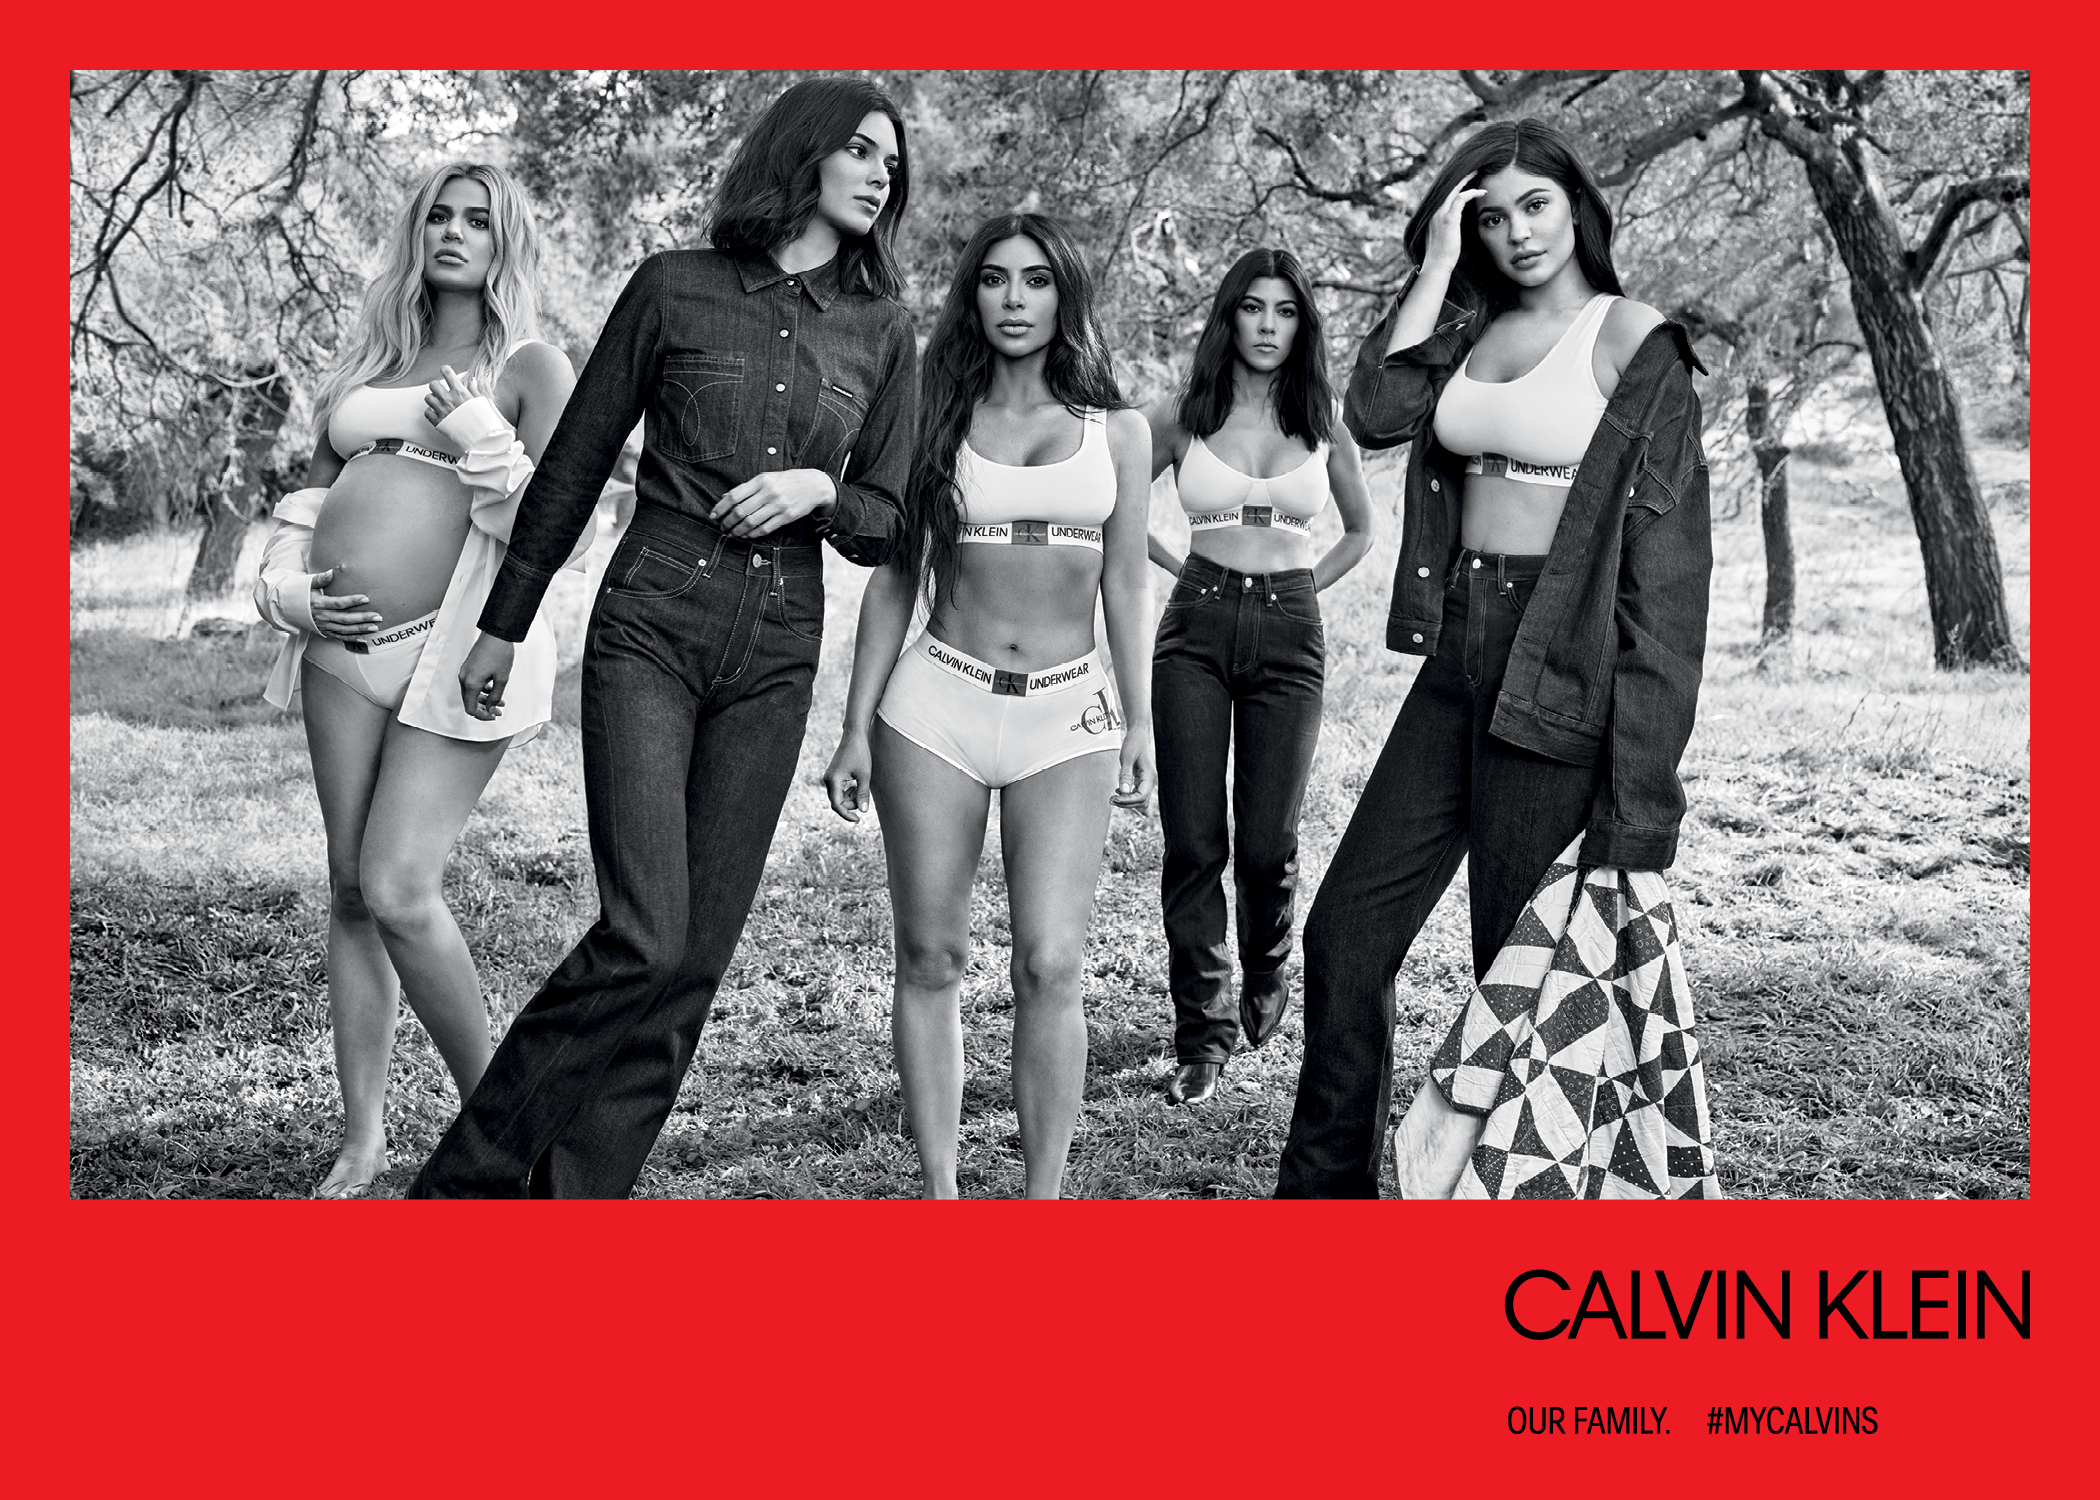 f5d78d732a Sister Act. The gang s all here in this sultry snap that includes looks  from the Calvin Klein Underwear ...